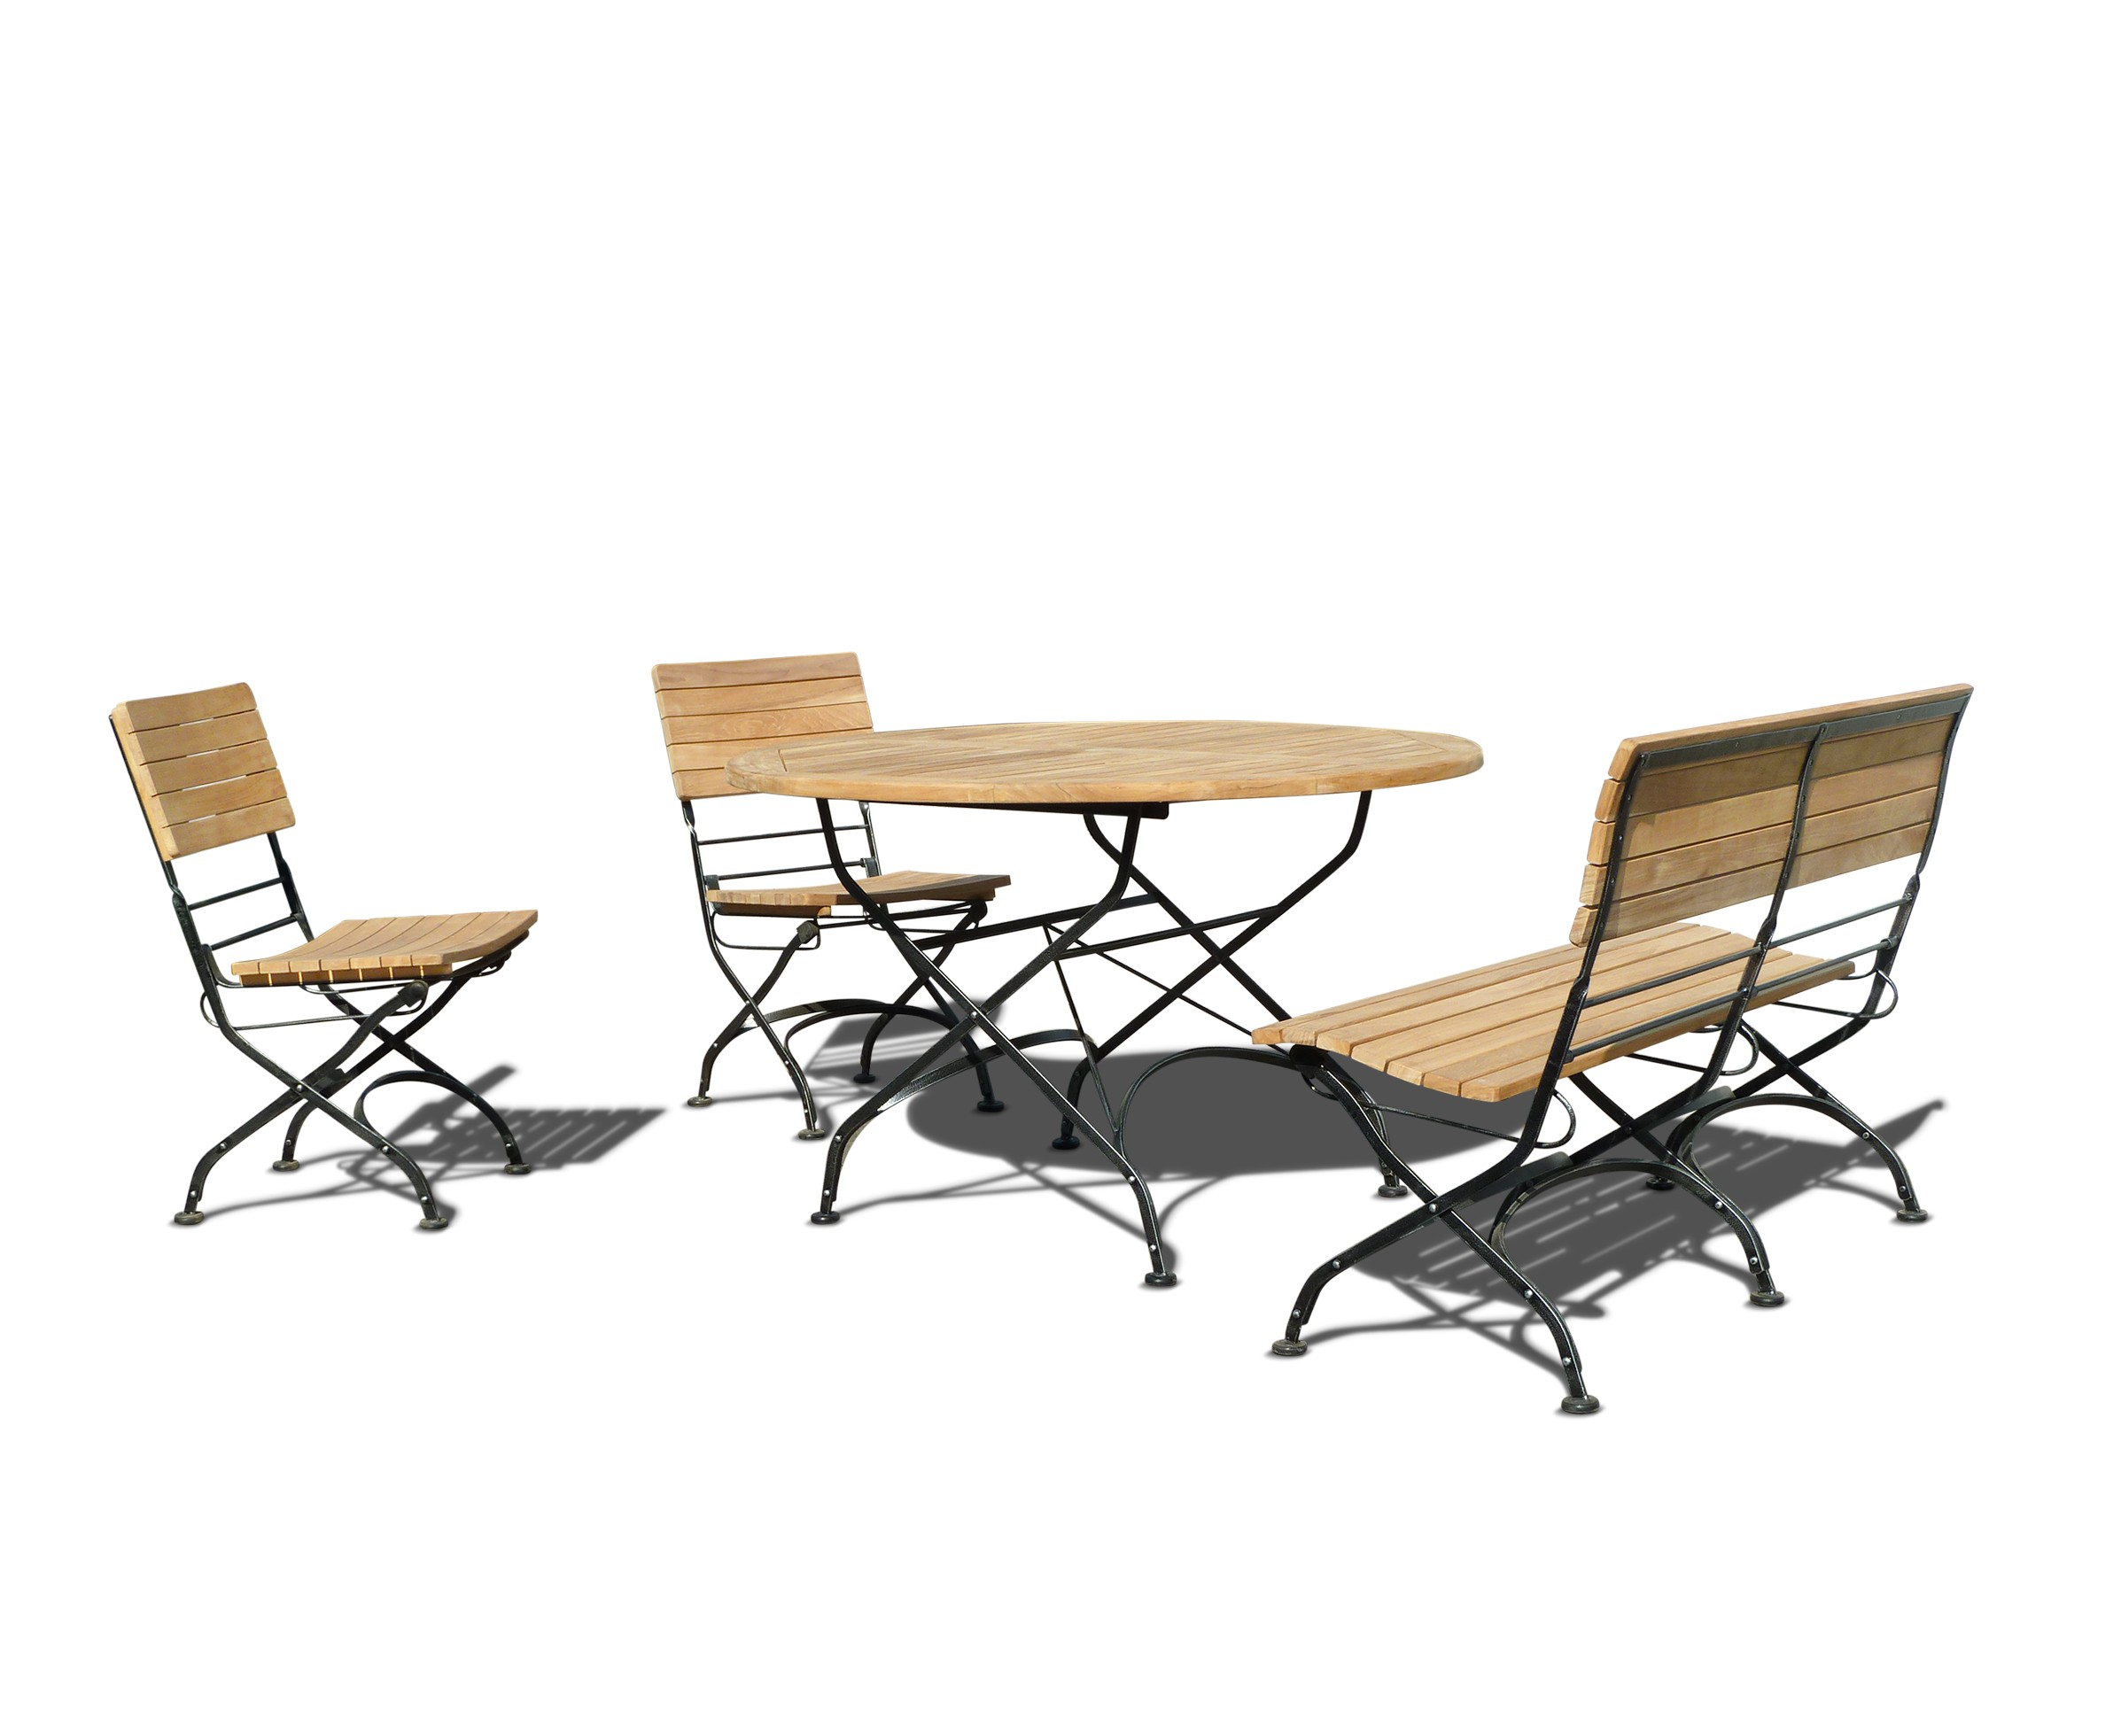 4 Seater Bistro Set With Round Outdoor Table 1.2m, Bench